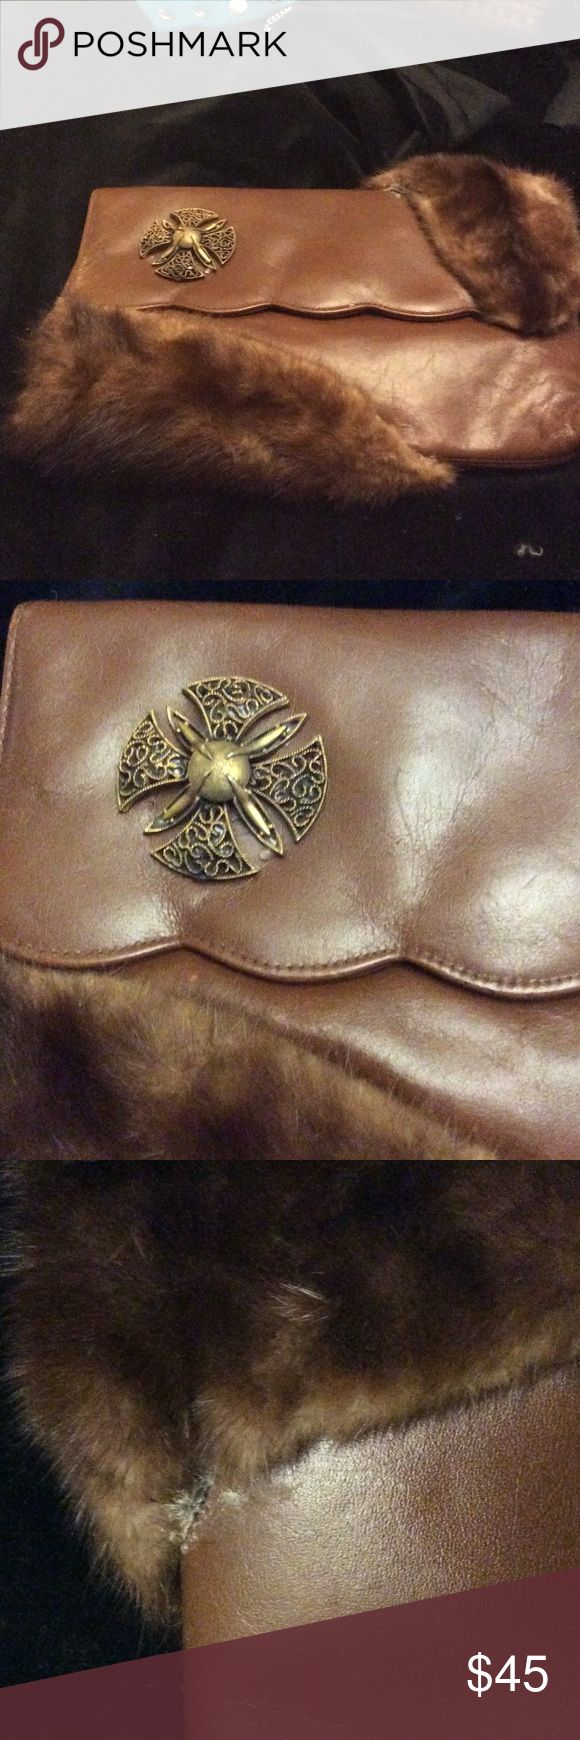 VINTAGE CUSTOM CLUTCH Genuine Brown leather customized with mink (I think) genuine fur. One of a kind. Bags Clutches & Wristlets